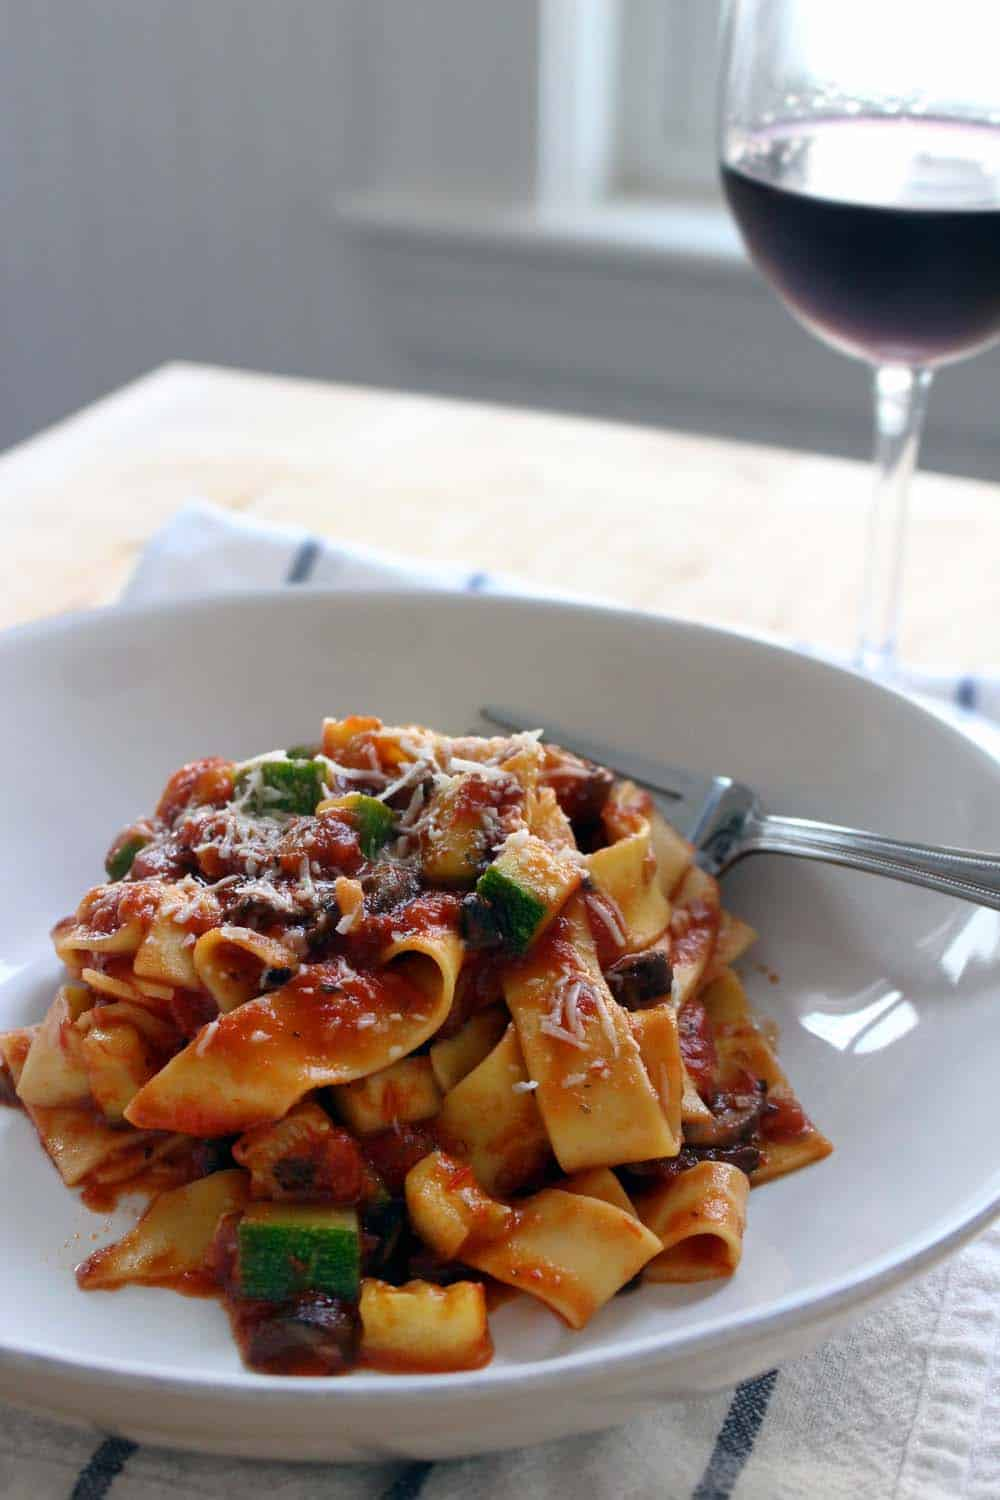 Pappardelle with Zucchini Mushroom and Marainara | A super quick and easy meal for a busy weeknight- just saute zucchini and mushrooms, add marinara sauce, and add cooked pasta! A healthy, tasty, cheap vegetarian meal.